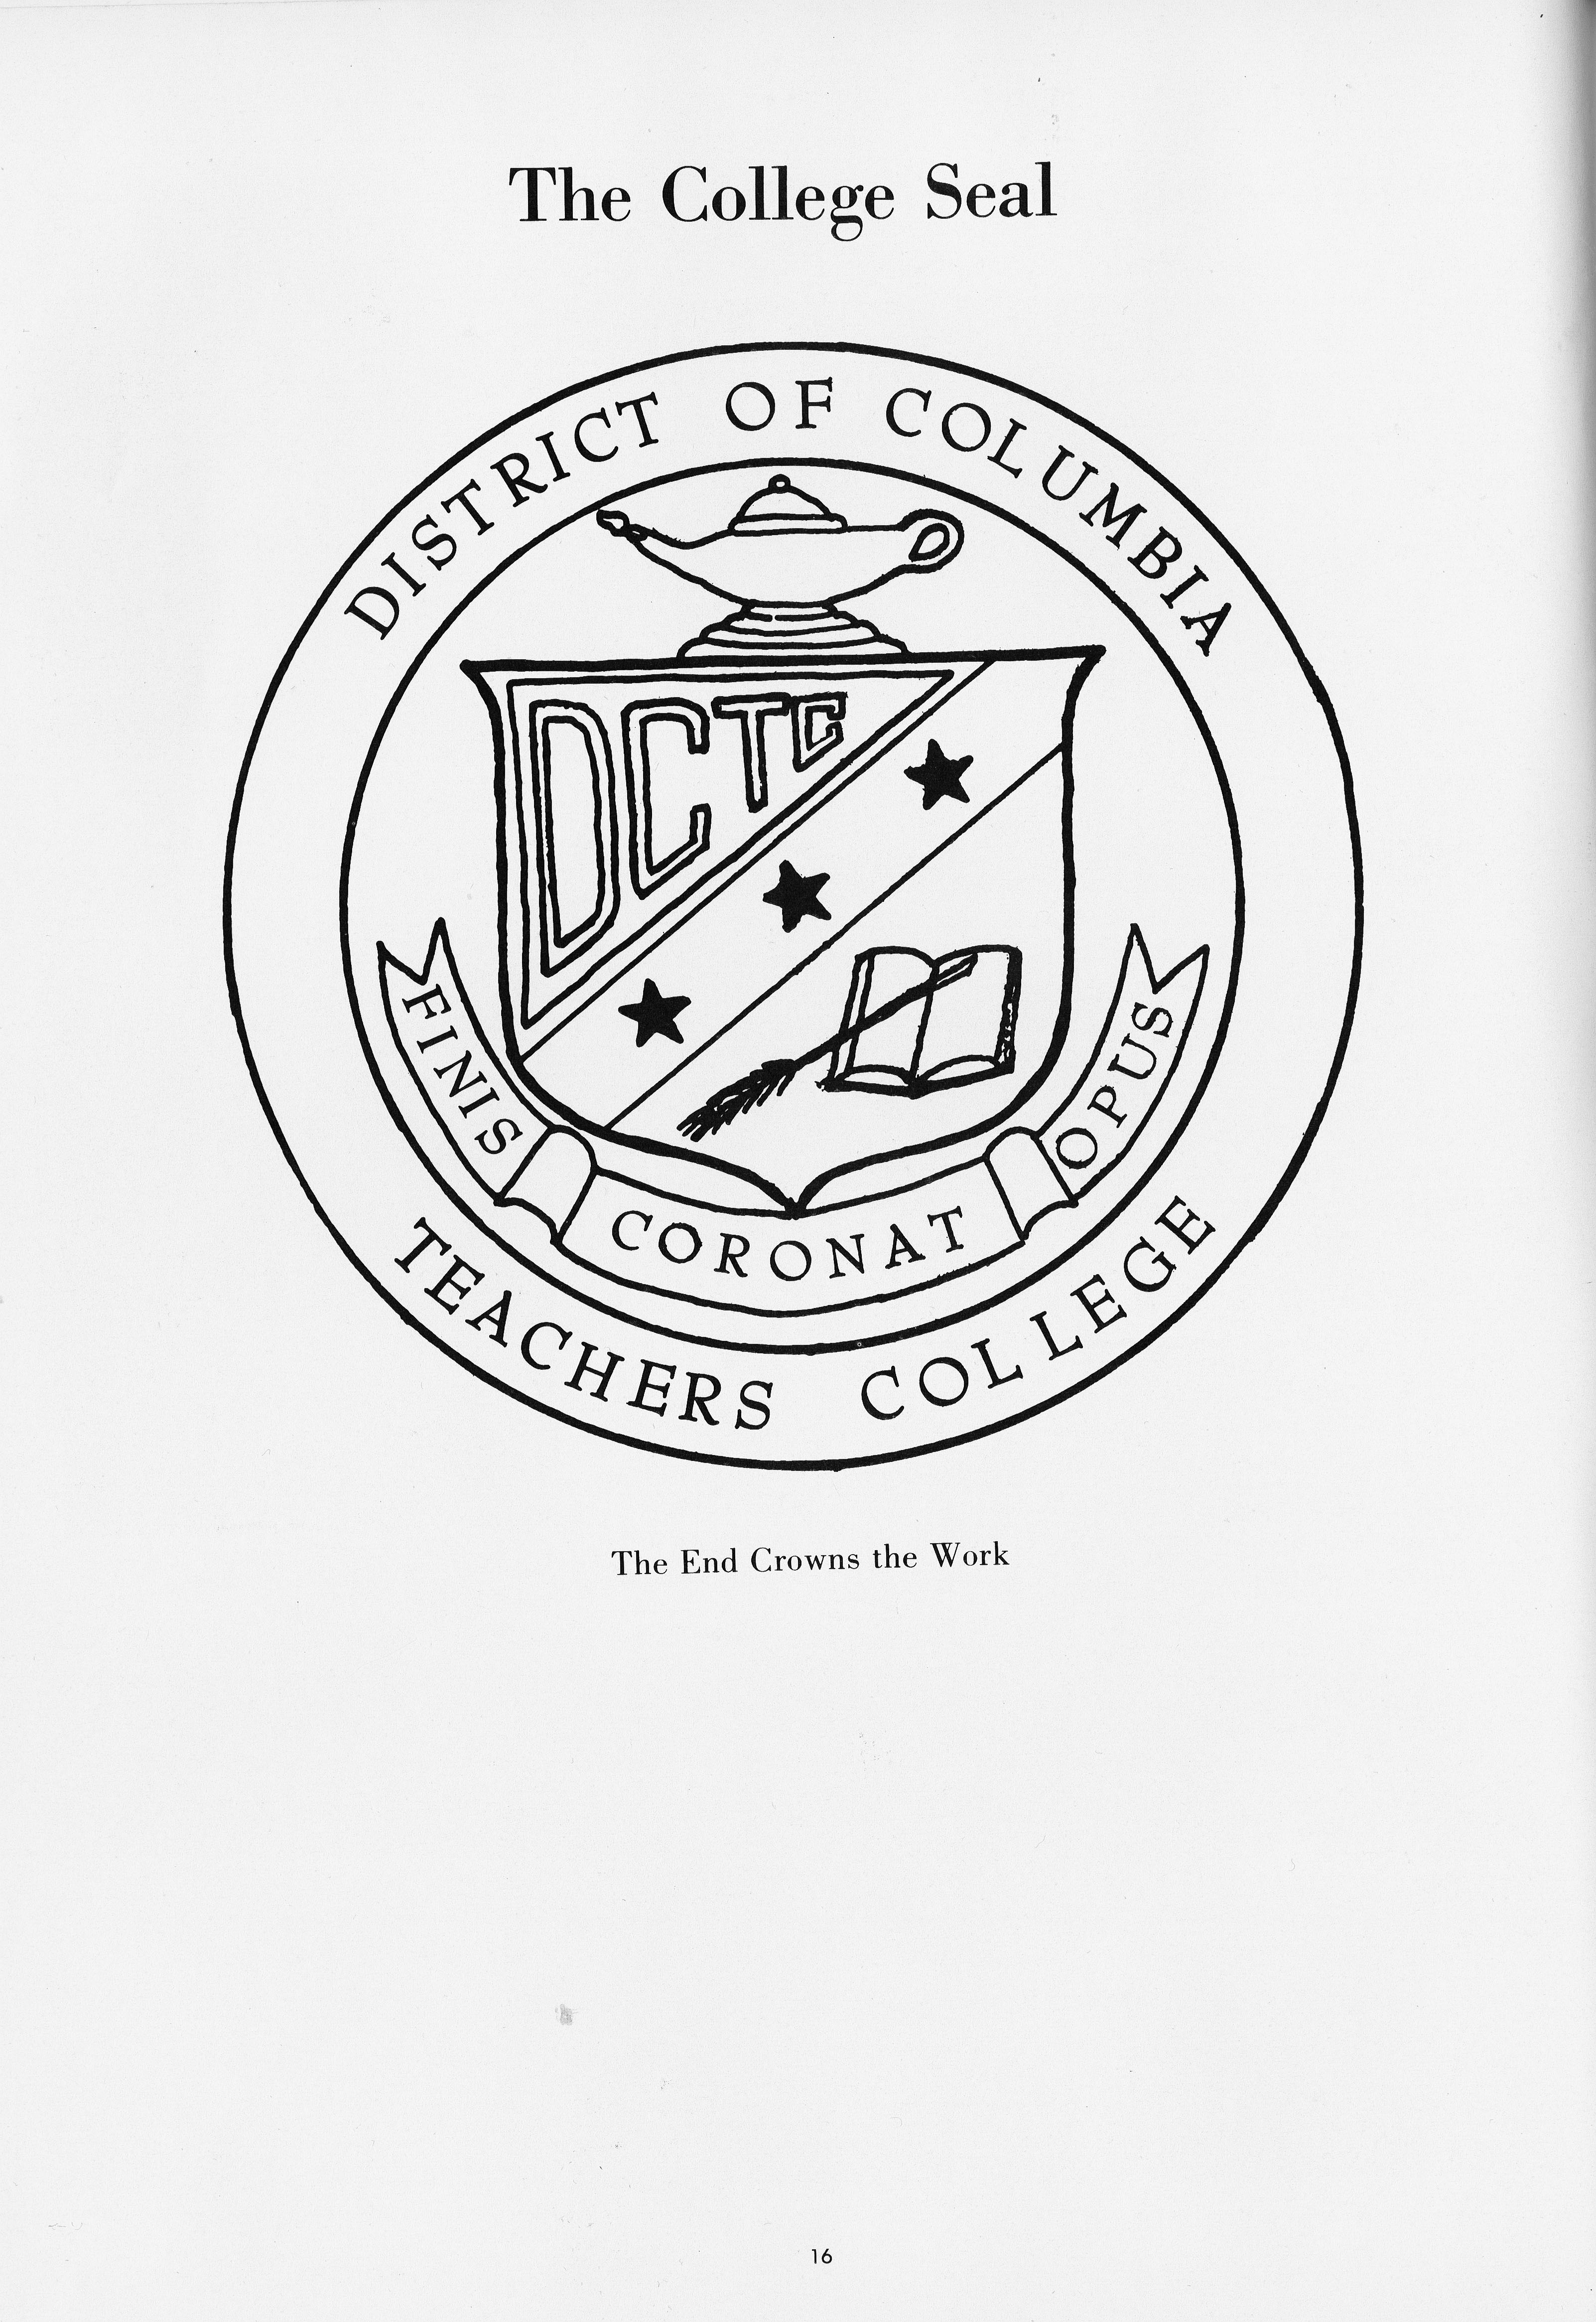 District of Columbia Teachers College – College Seal